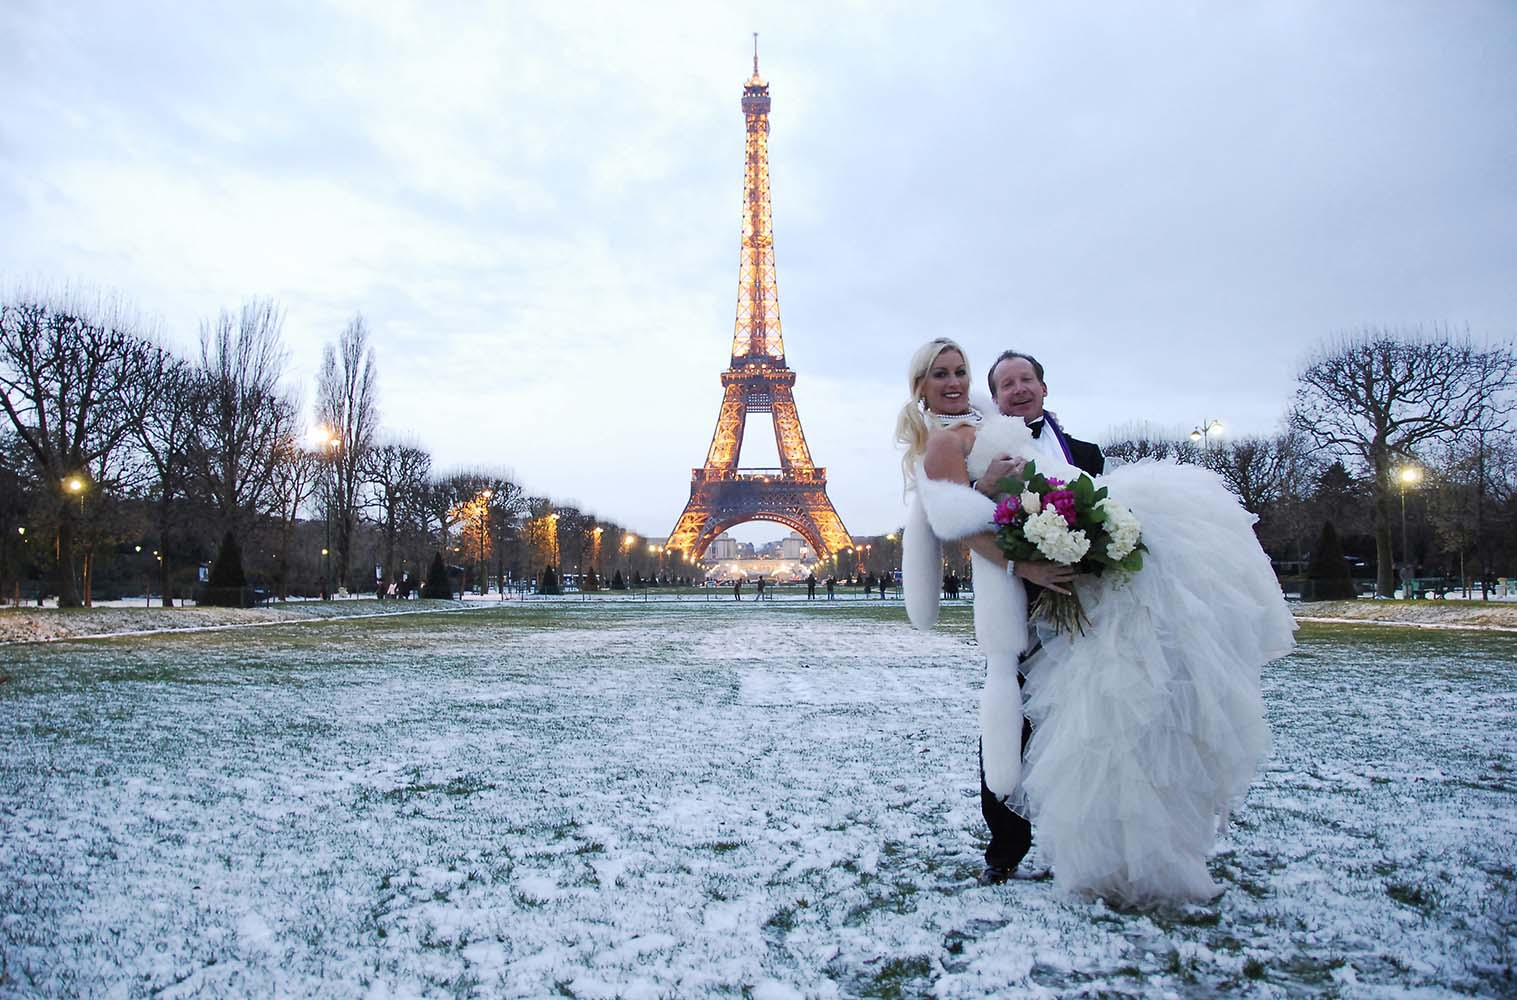 Wedding with bride and groom on snowy Eiffel Tower gardens, Paris, France